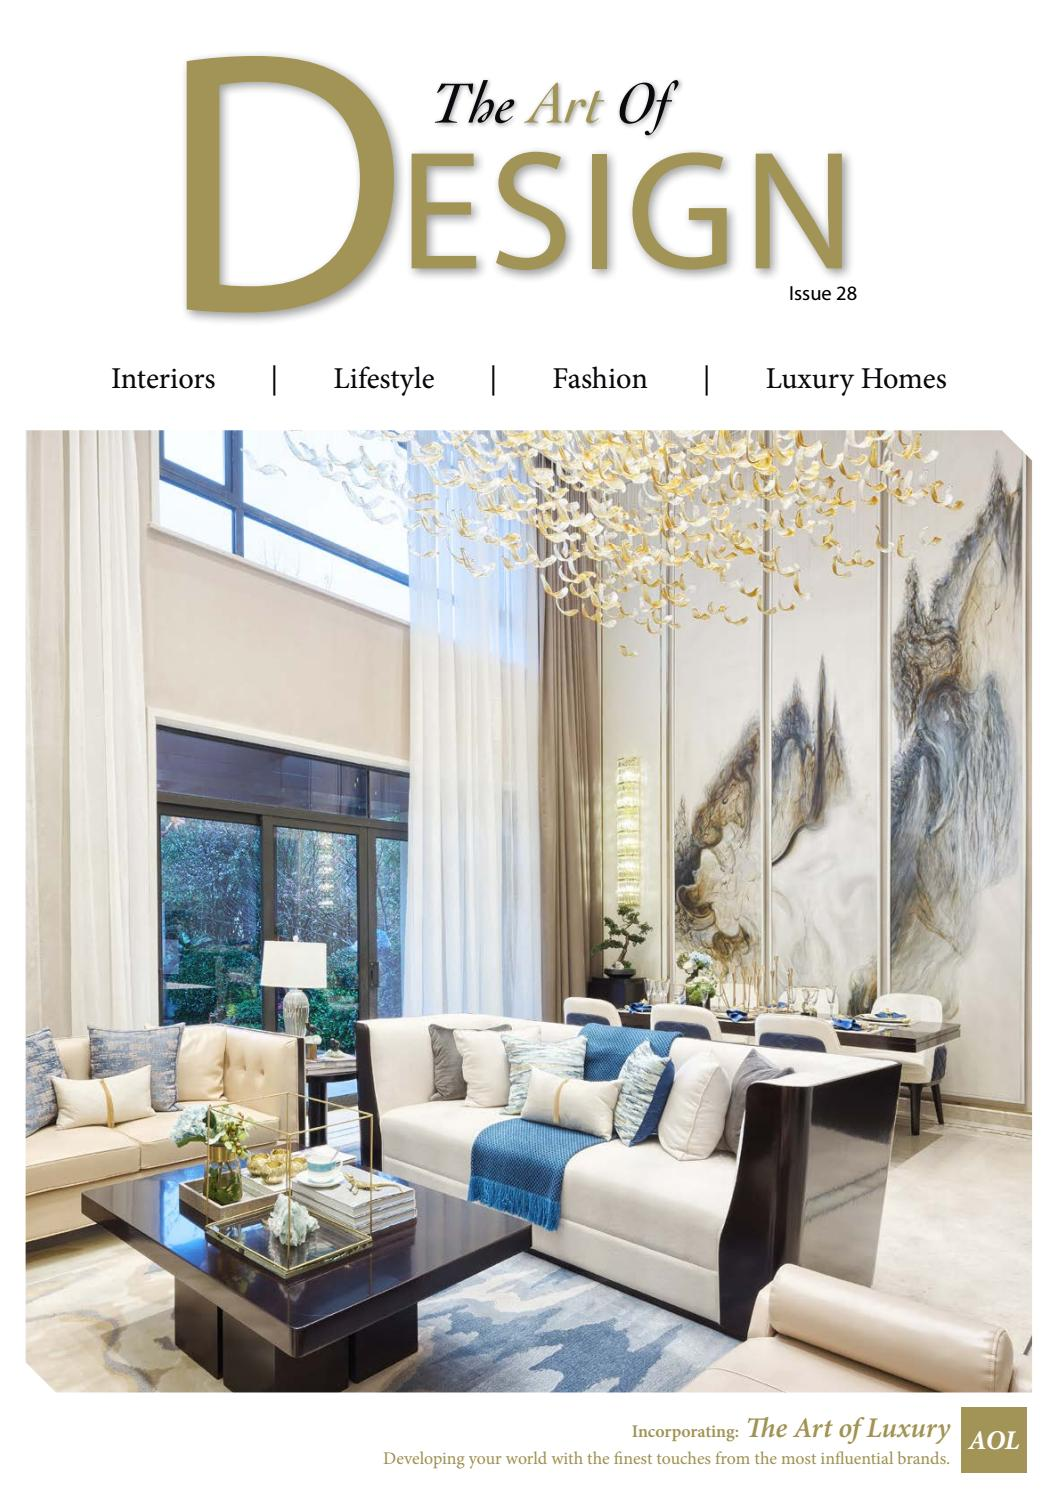 Home Cinema Saba Design 08 Part - 22: The Art Of Design - Issue 28 2017 By MH Media Global - Issuu